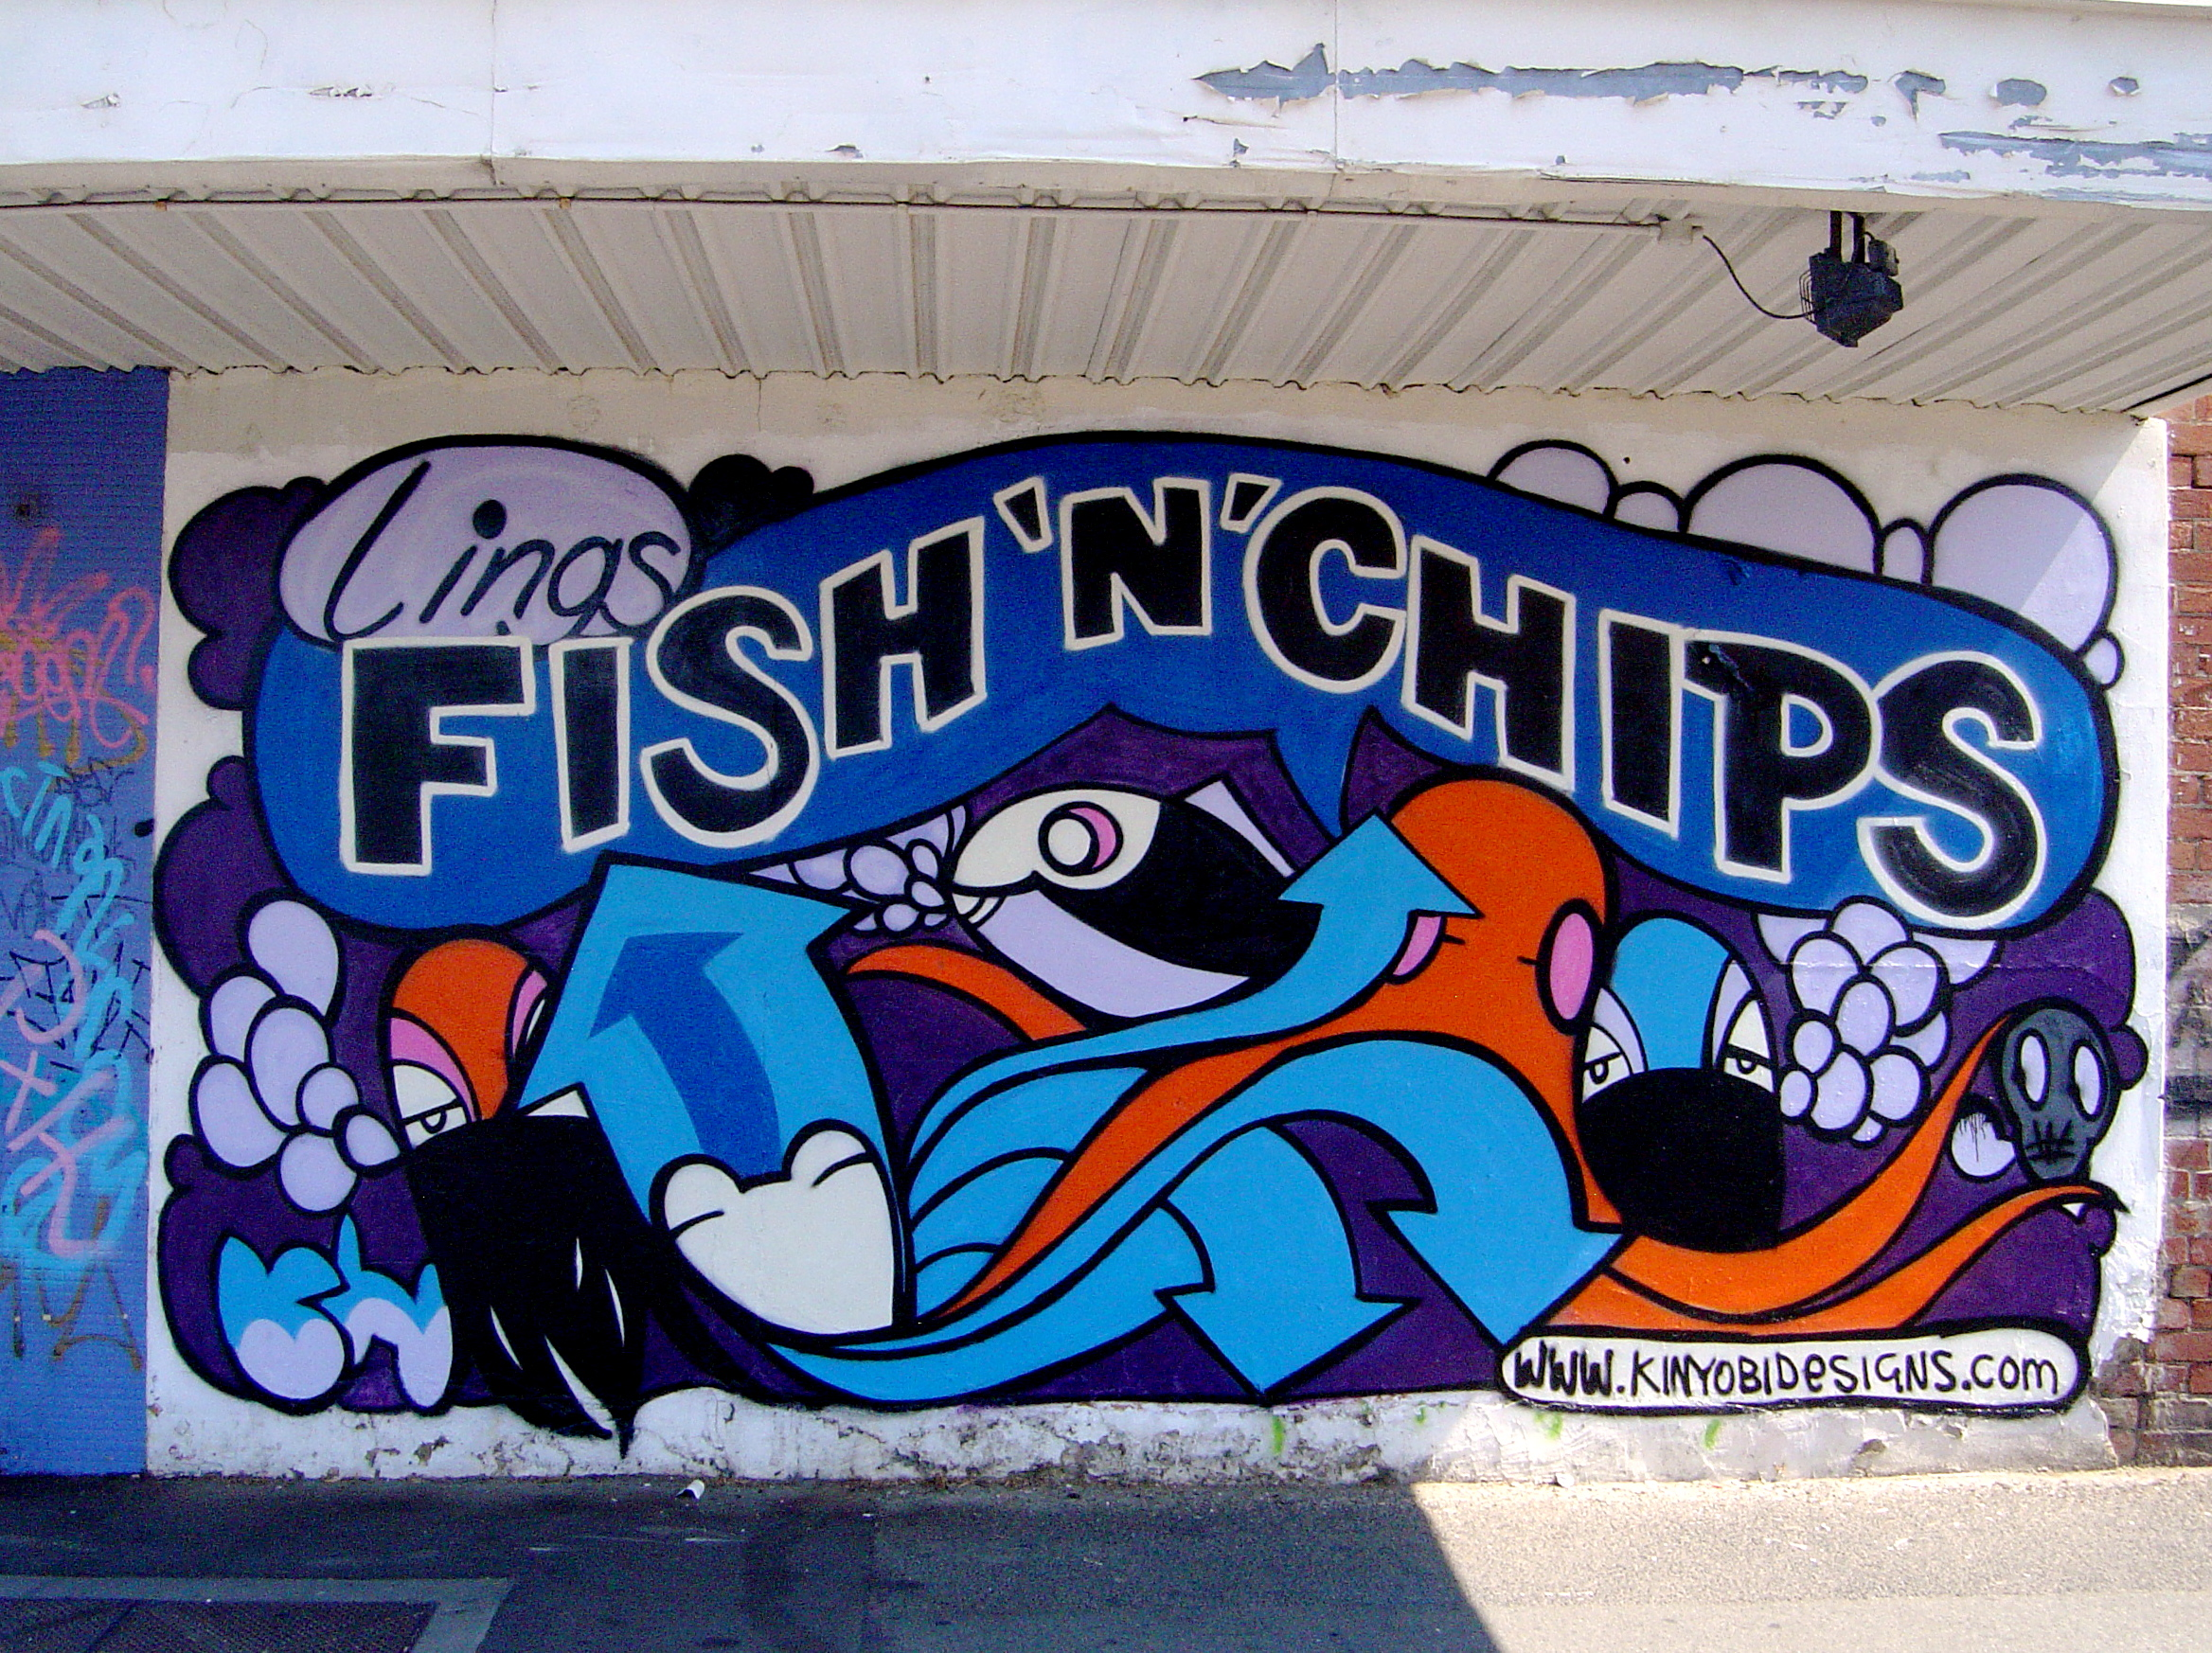 Ling's Fish and Chips